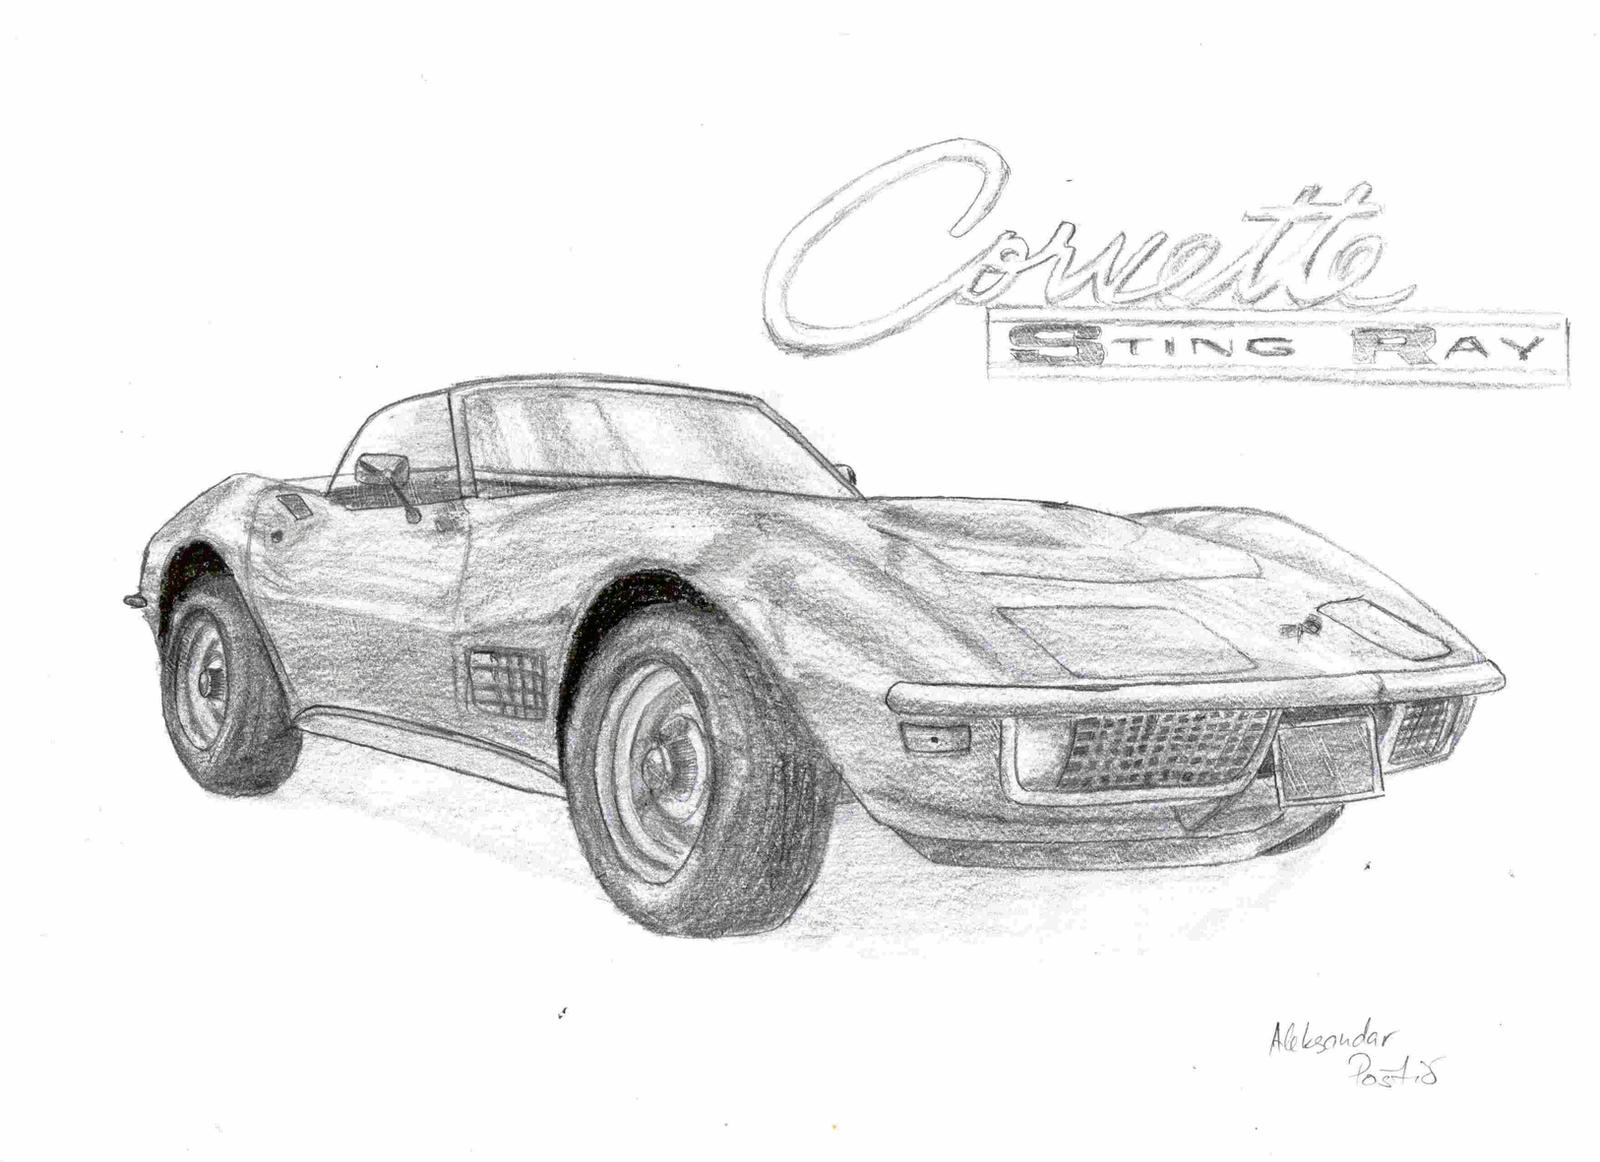 Chevrolet bel air sport coupe  1955 additionally Corvette Line Drawing C 7CggVq0luotvixNwfGD0jS2inWDCnXHtIlrHEFNV6qw as well Off Road Vehicle Coloring Pages likewise Dibujos Para Colorear Autos Deportivos Modernos in addition How To Draw Cars Easy Step By Step. on chevy corvette car coloring pages